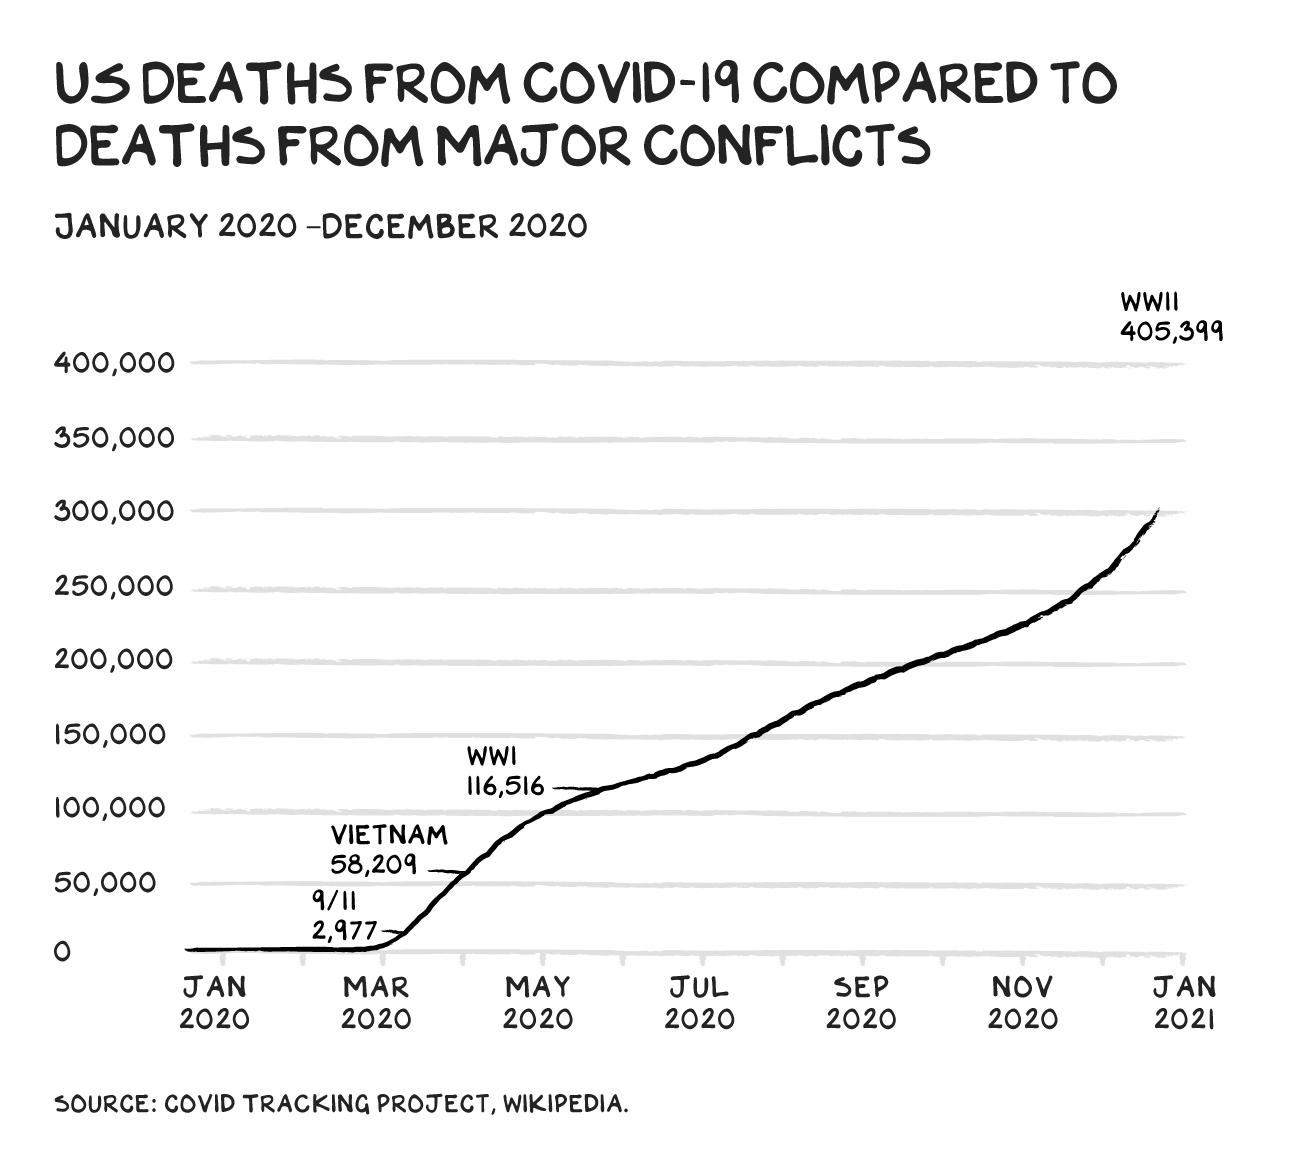 US Deaths from Covid Compared to Major Conflicts